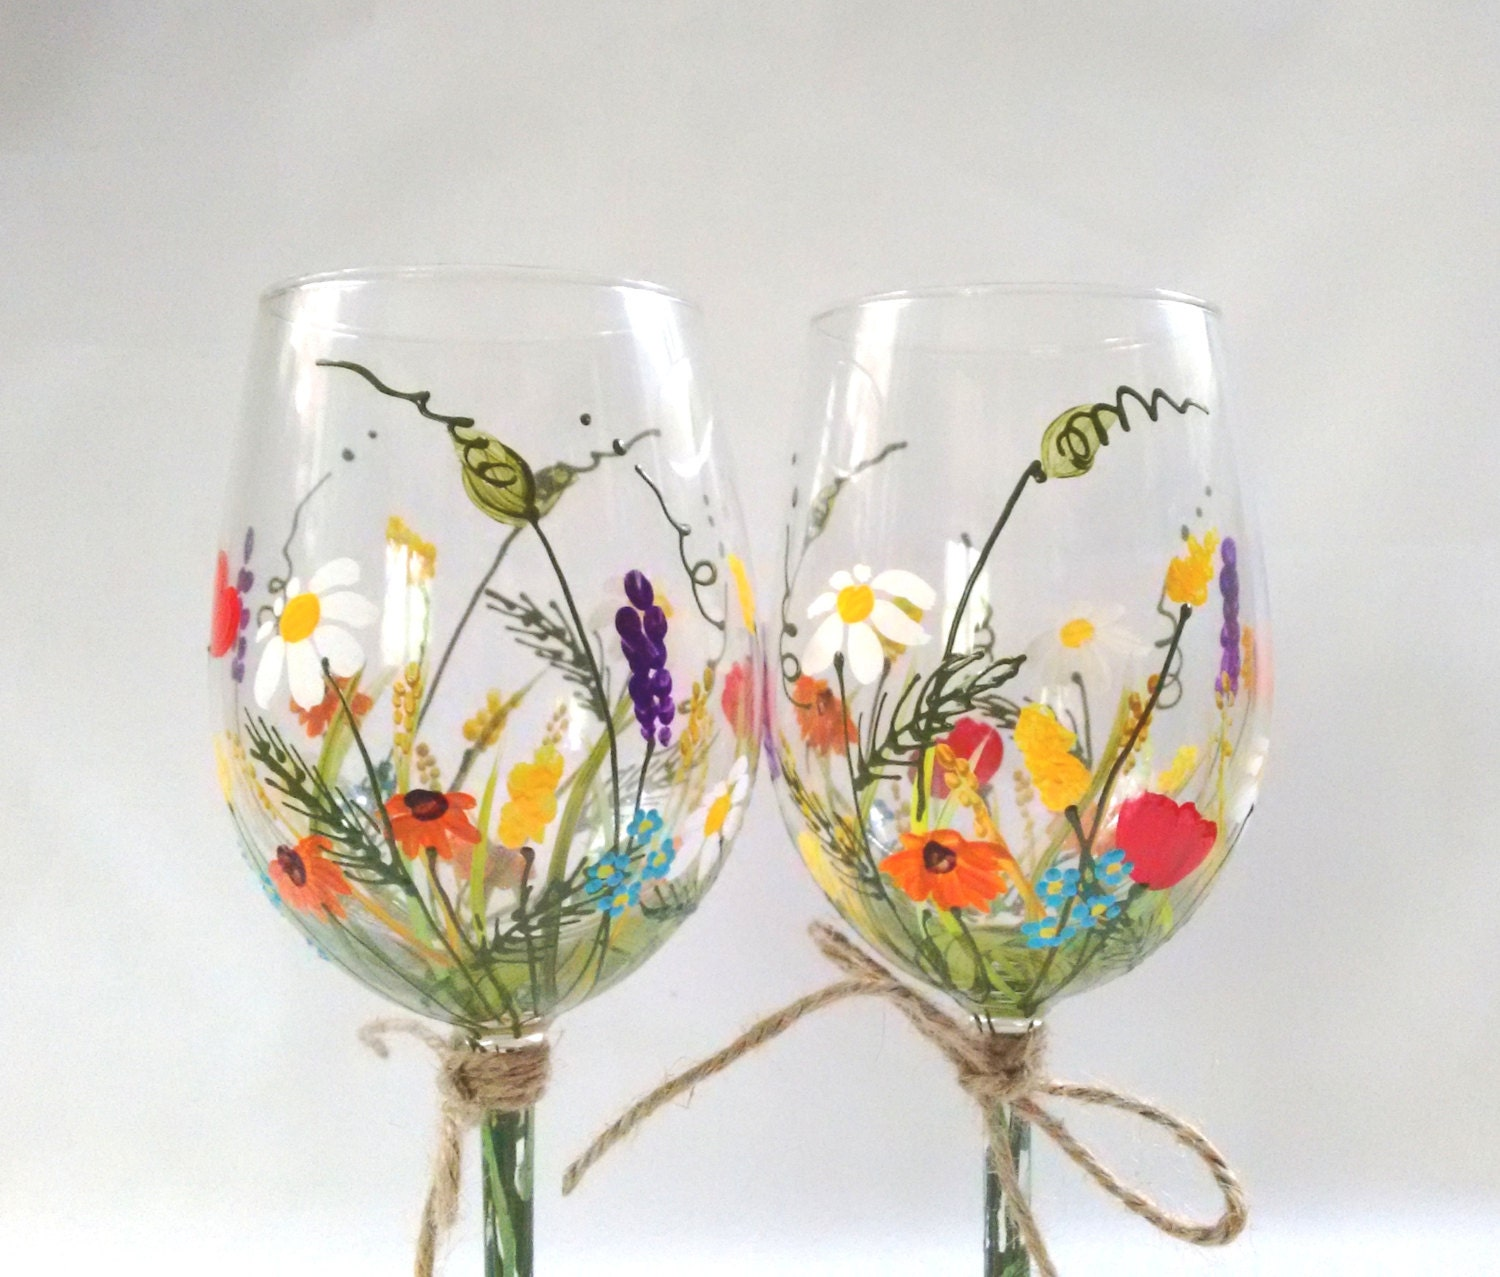 Wine glasses hand painted wine glasses keepsake gift by for What paint do you use to paint wine glasses